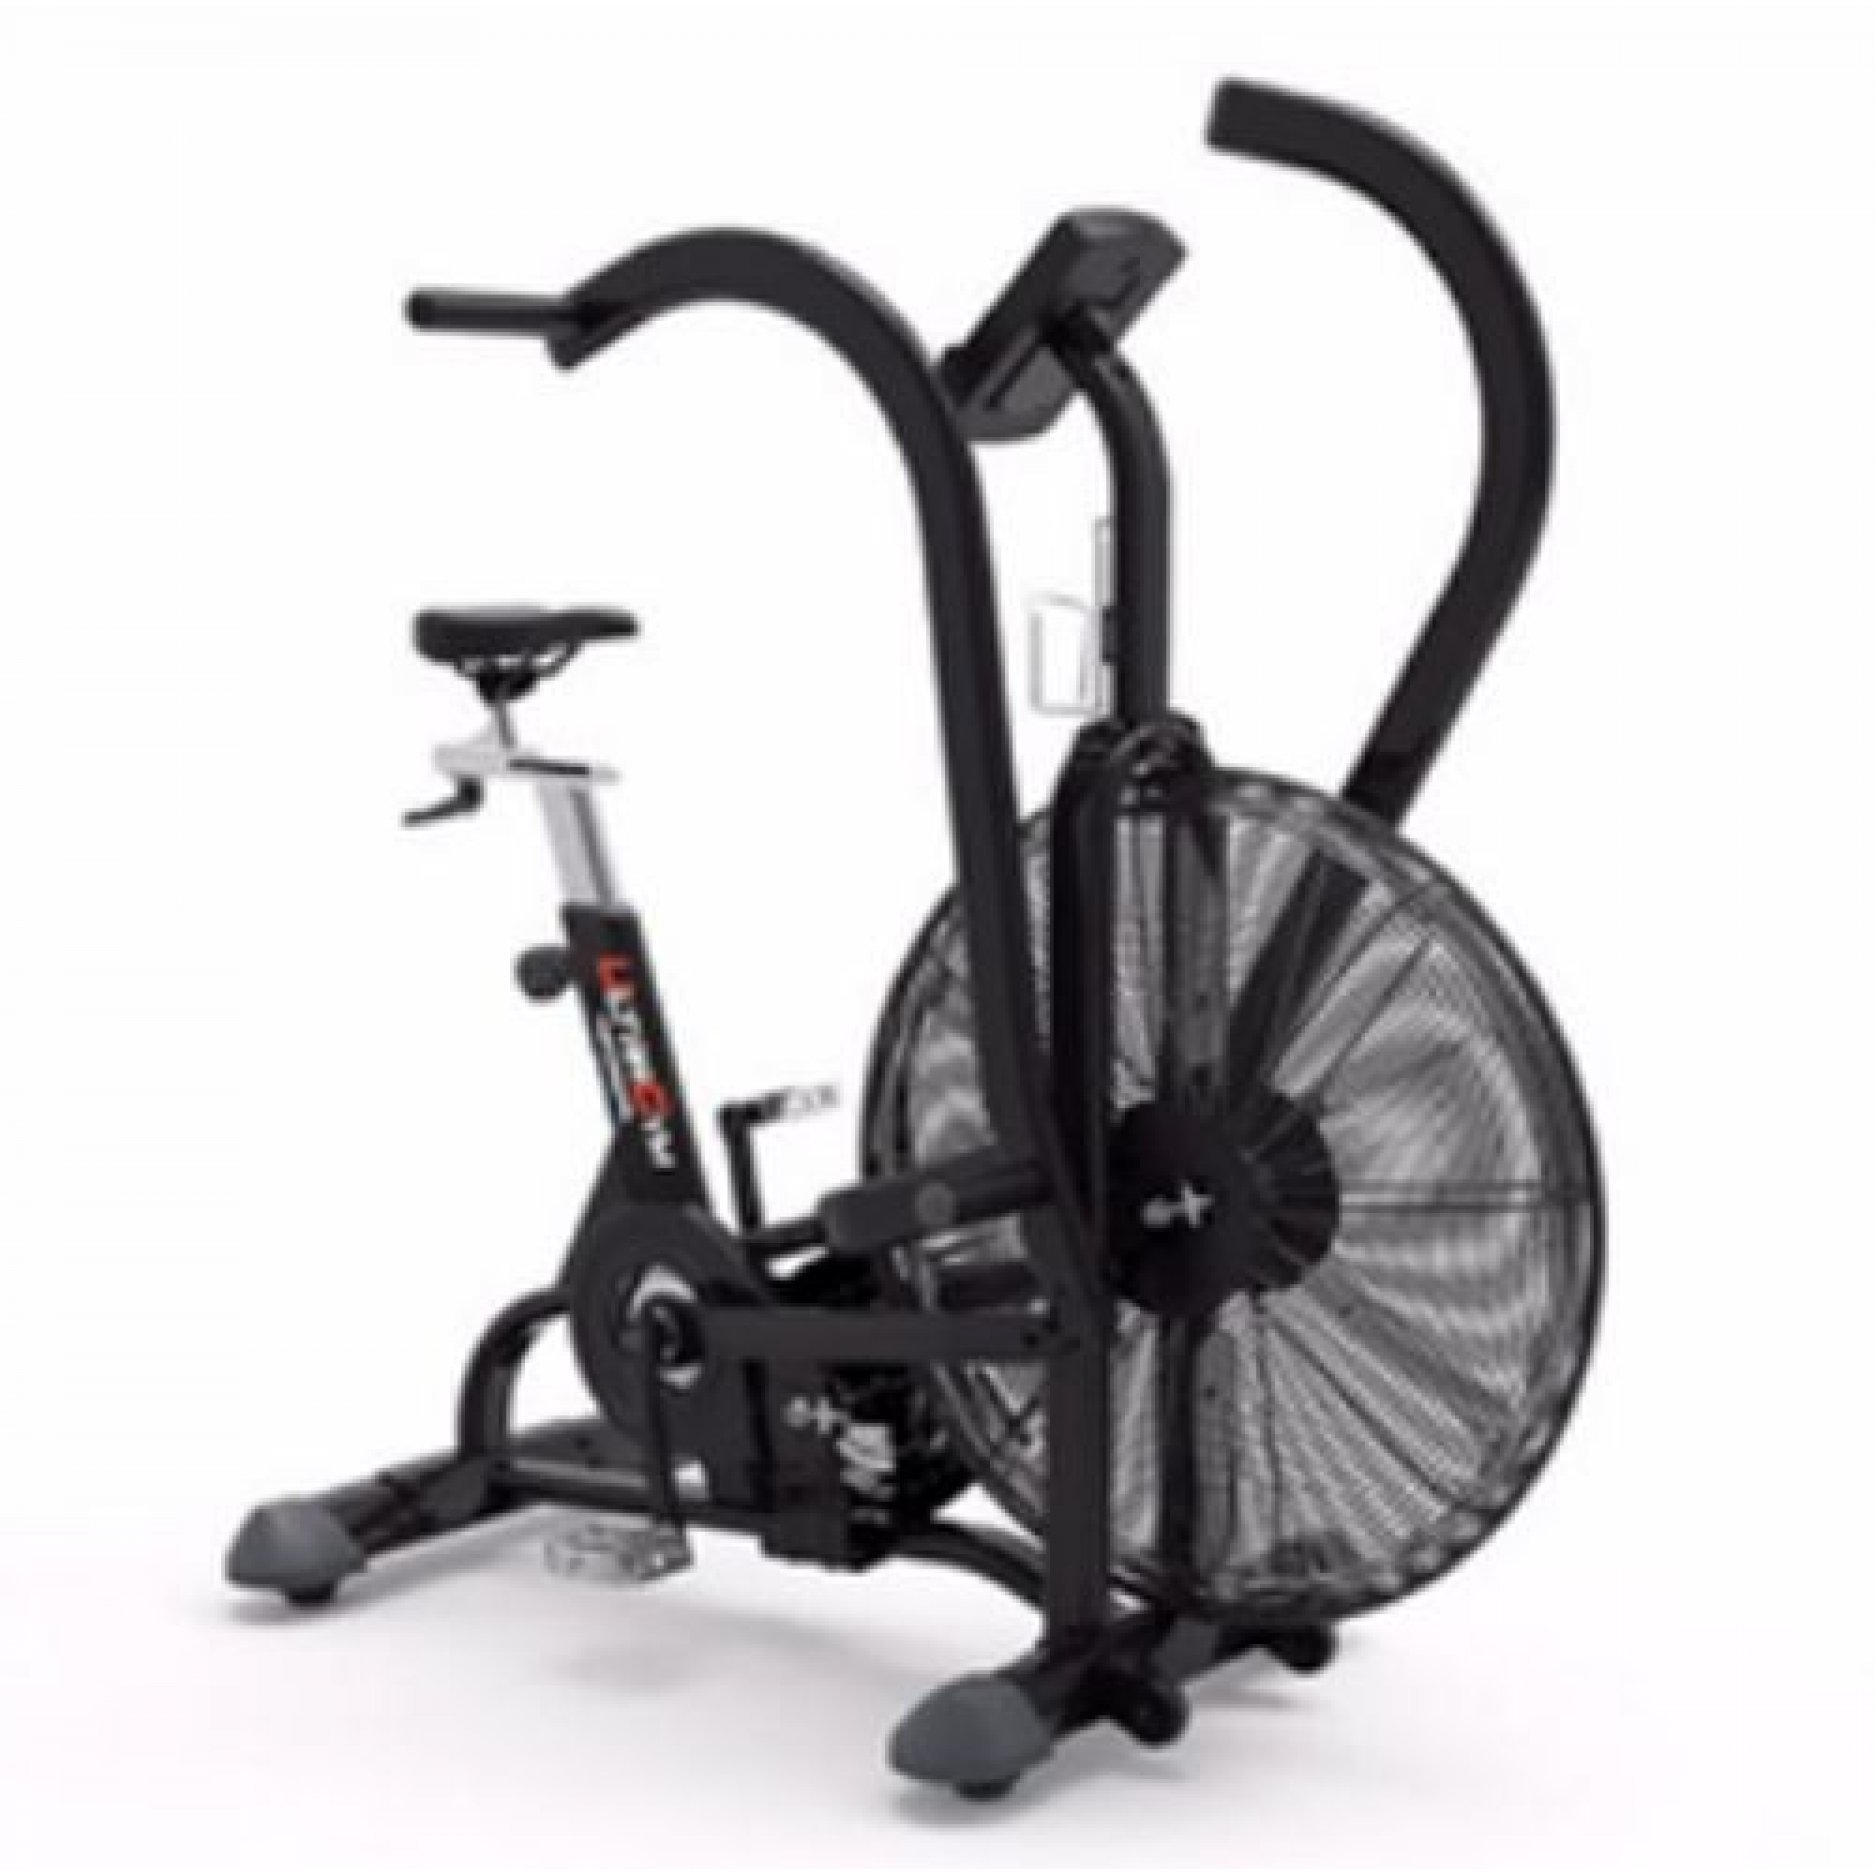 АЭРО велосипед UltraGym Air bike UG-AB002